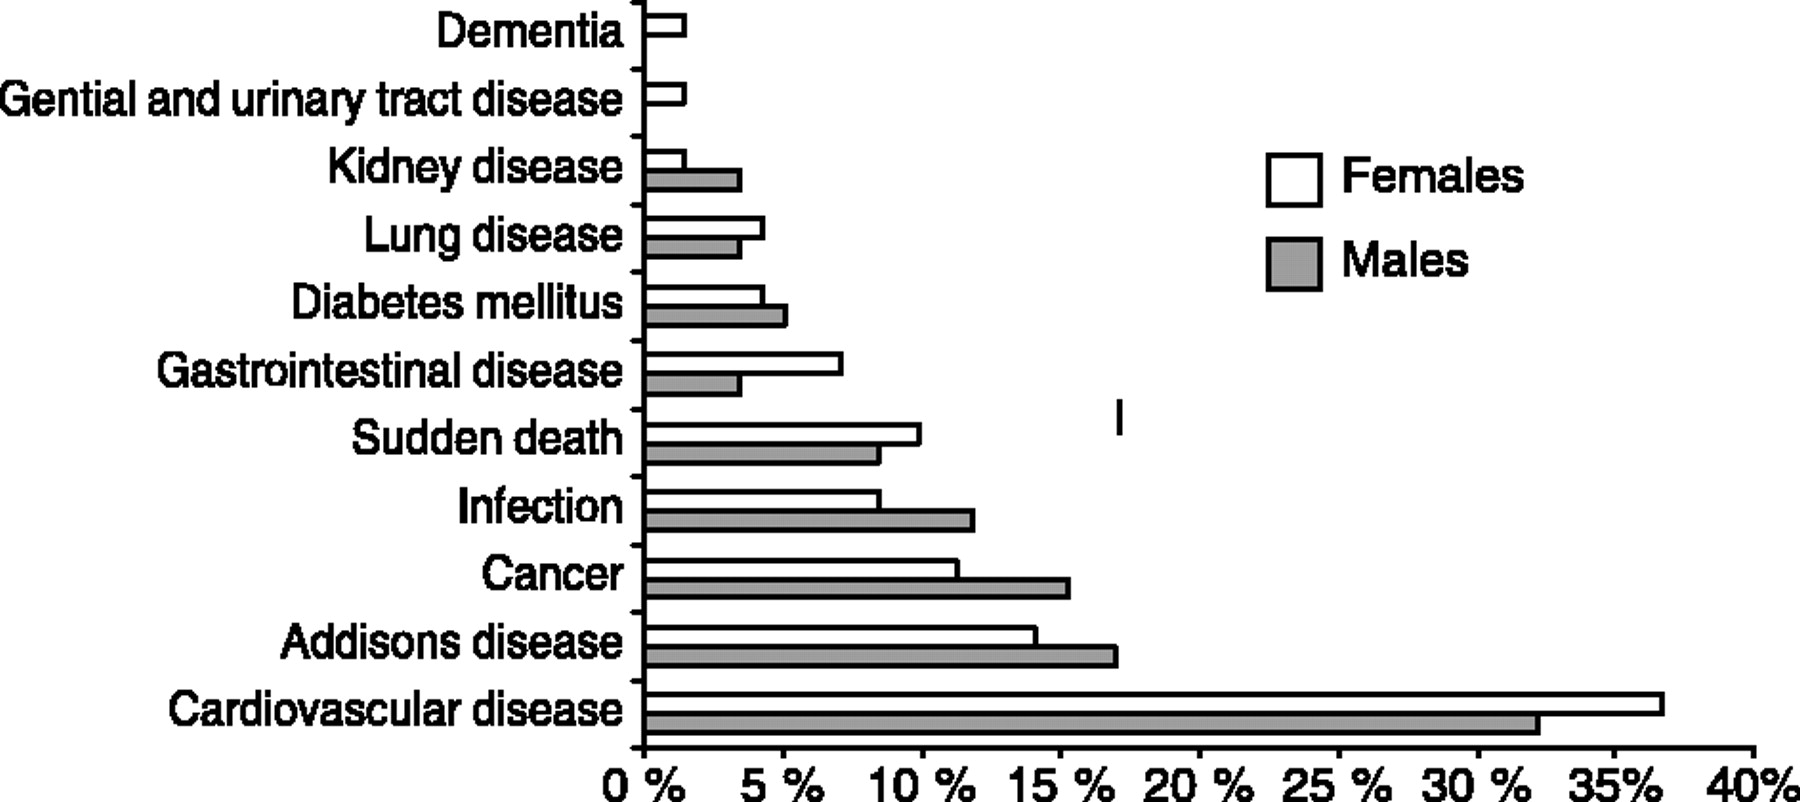 Normal Overall Mortality Rate In Addison S Disease But Young Patients Are At Risk Of Premature Death In European Journal Of Endocrinology Volume 160 Issue 2 2009